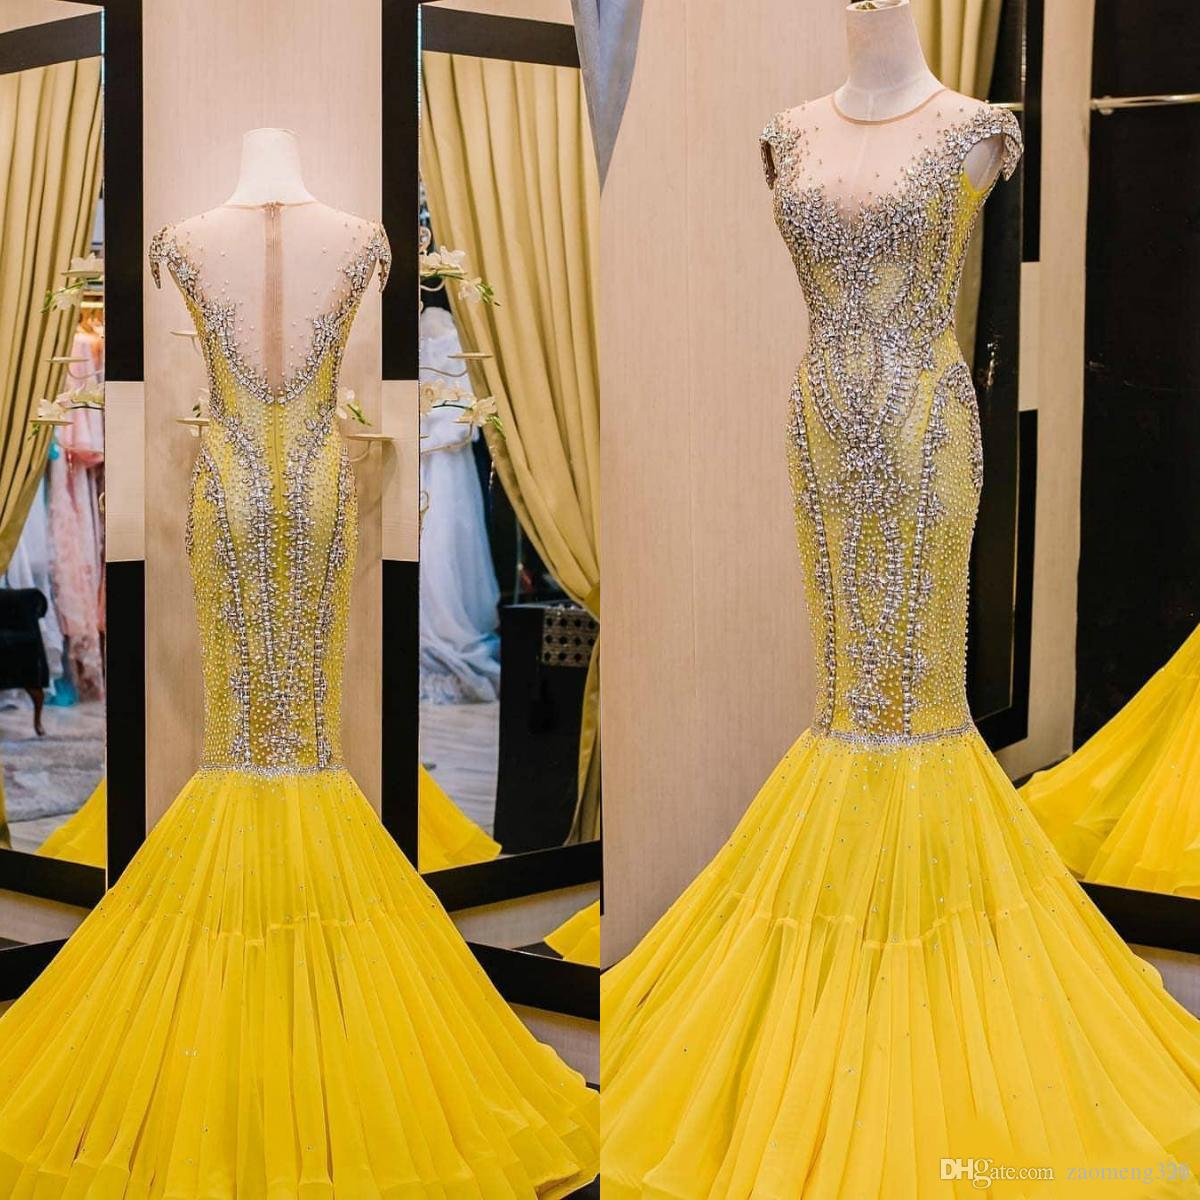 04aaac9011910 2019 Arabic Yellow Luxurious Evening Dresses Beaded Crystals Mermaid Prom  Dress Sheer Neck Formal Party Bridesmaid Pageant Gowns Custom Made